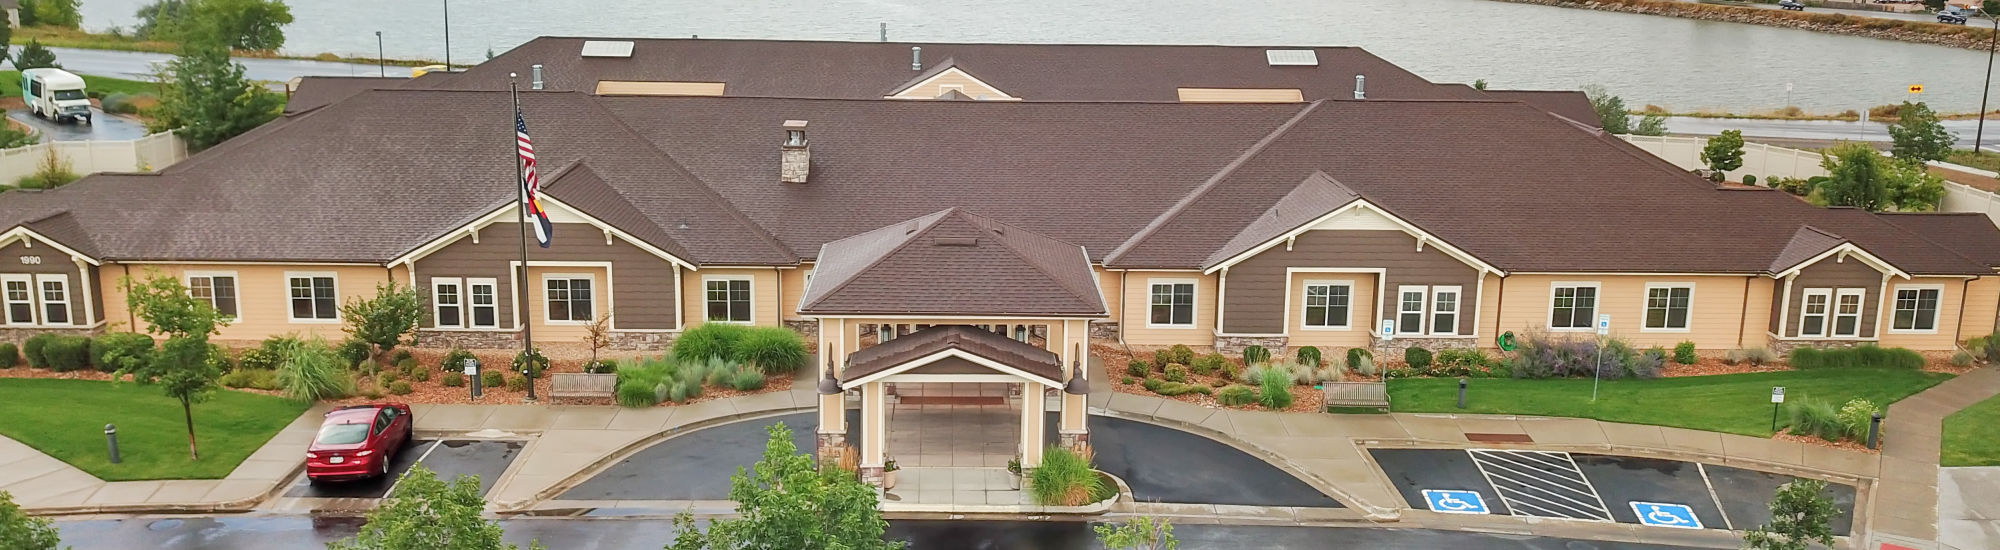 Floor Plans at Seven Lakes Memory Care in Loveland, Colorado